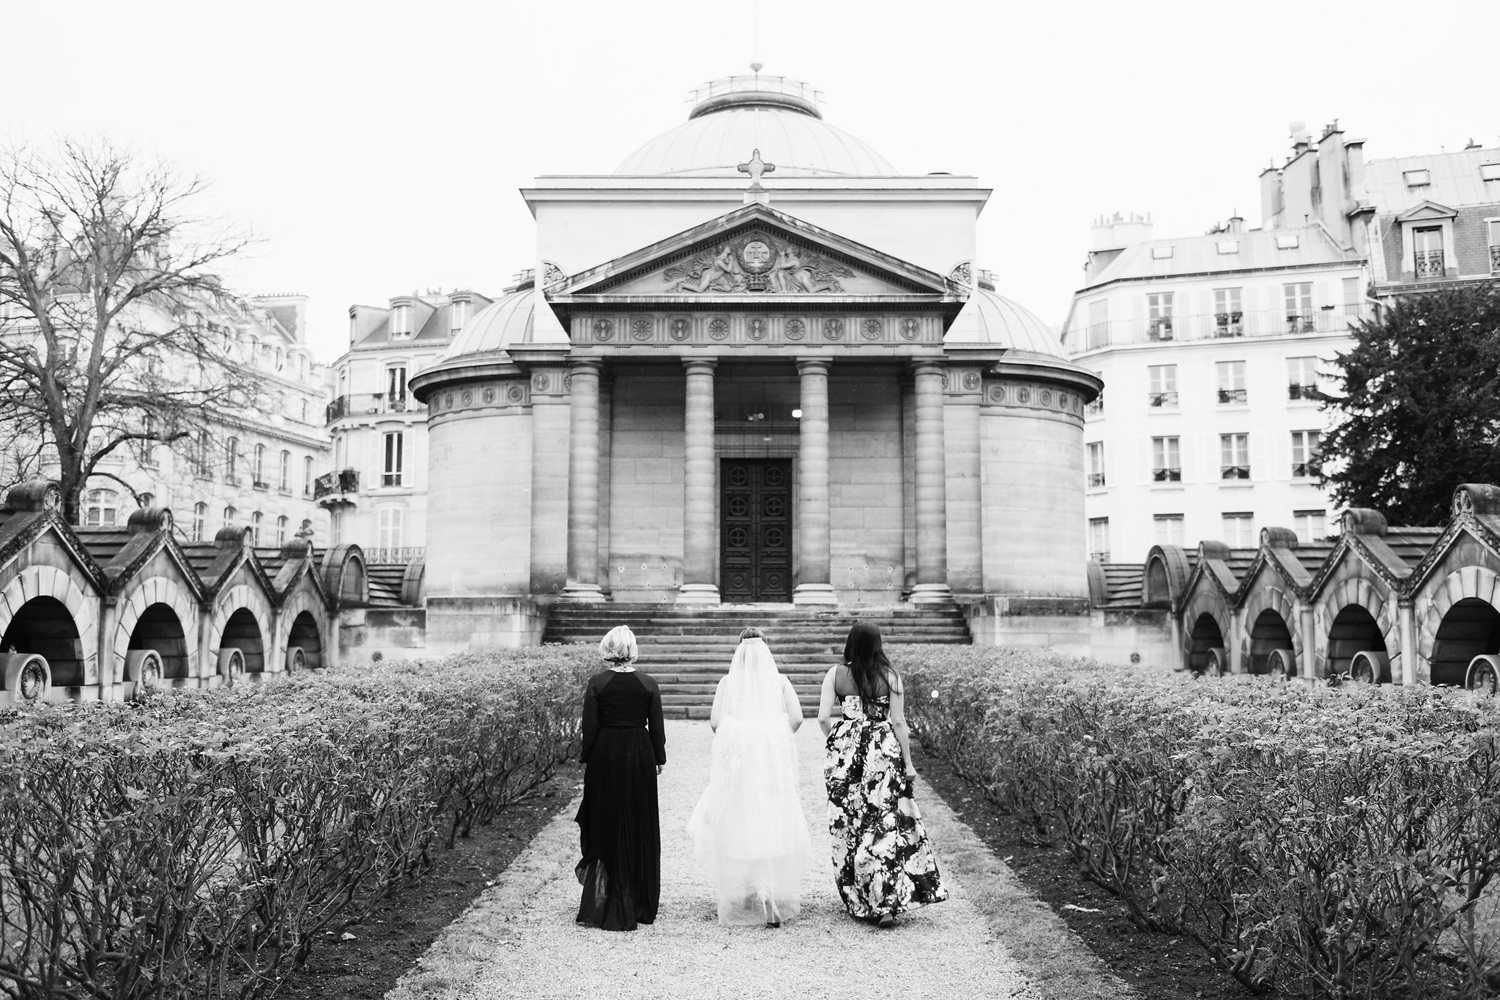 130-katie-mitchell-paris-europe-destination-elopement-wedding-photographer-france.jpg